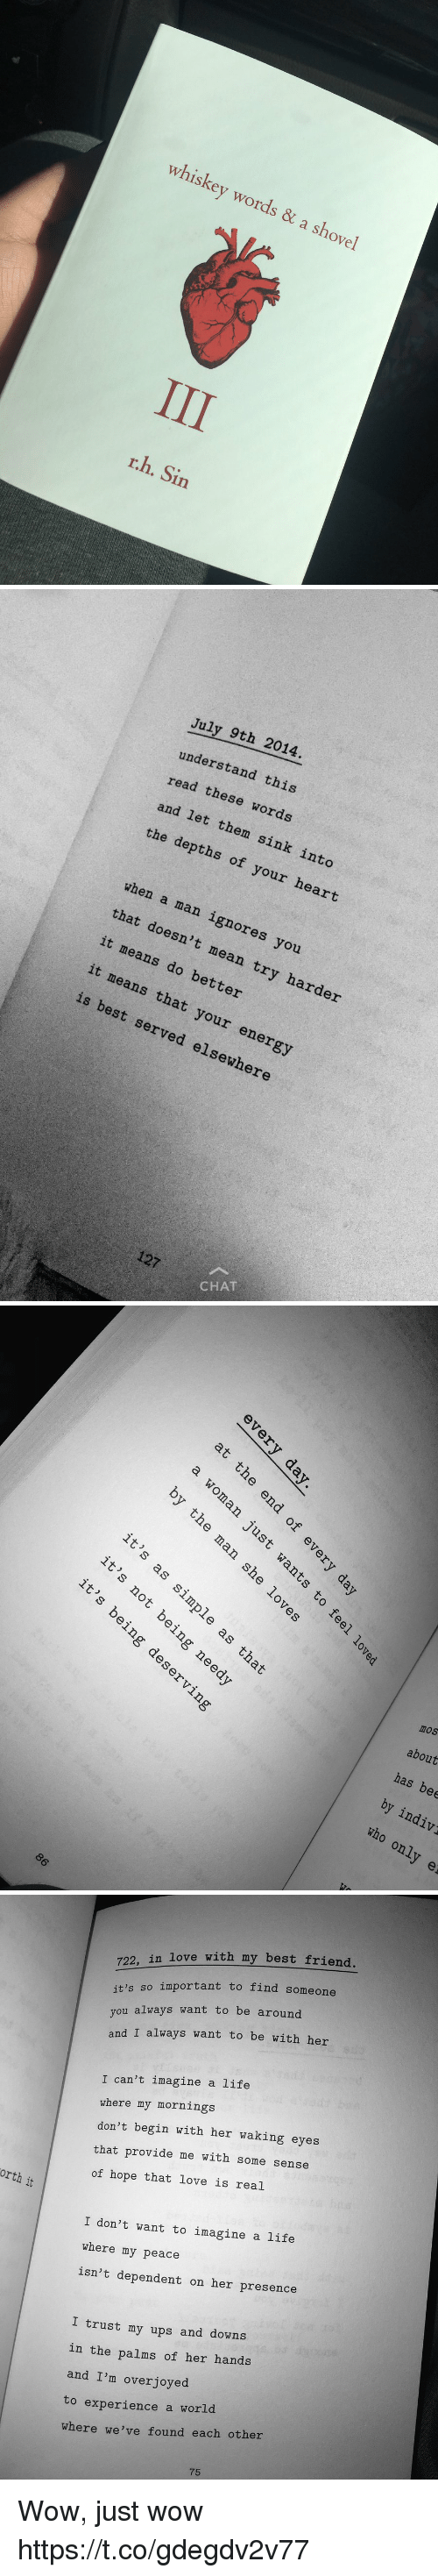 My Mornings: whiskey words a & shovel  r.h. Sin   July 9th 2014.  understand rea  these this  and let words  the them sink depths of into  your heart  when a that man ignores it doesn't you  means mean it means do better  try harder  that your is best served elsewhere  127  CHAT   of  er  to  it  OD,  it)  ple  as  it  mos  ηe  about  gde  Y;  has bee  by indiv  who only e  d, g  en  tme  O  O  6  it 's  it  と50  it   orth  i  722, in love with my best friend  it's so important to find someone  ou always want to be around  and I always want to be with her  I can't imagine a life  where my mornings  don't begin with her waking eyes  that provide me with some sense  of hope that love is real  I don't want to imagine a life  where my peace  isn't dependent on her presence  I trust my ups and downs  in the palms of her hands  and I'm overjoyed  to experience a world  where we've found each other Wow, just wow https://t.co/gdegdv2v77